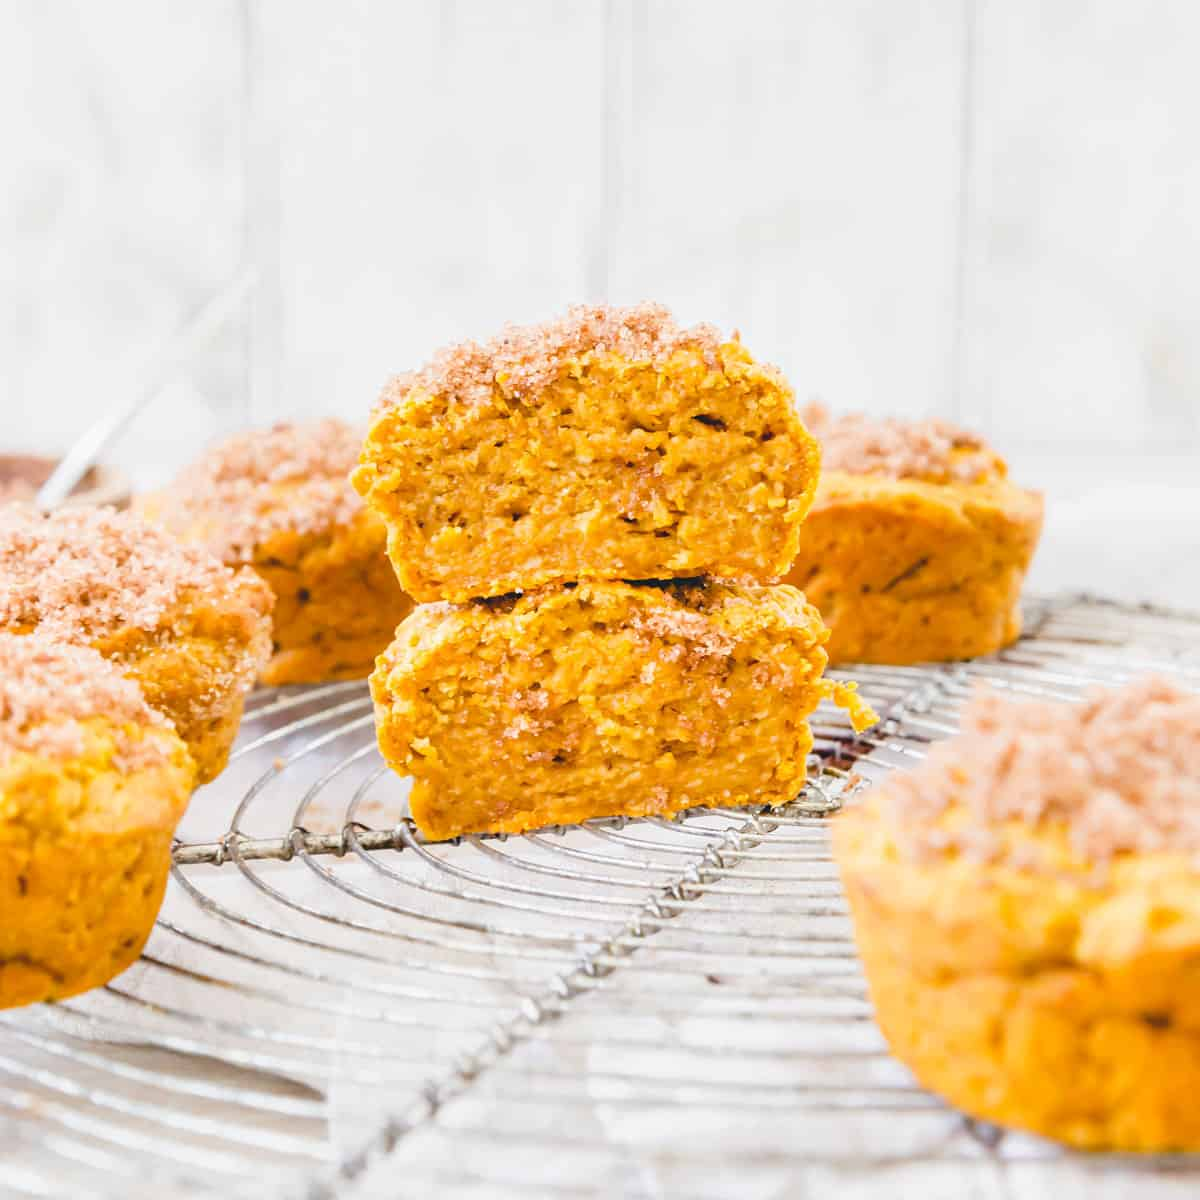 Tender, moist and packed with pumpkin spice flavor, these gluten-free pumpkin muffins are the perfect fall snack or treat!